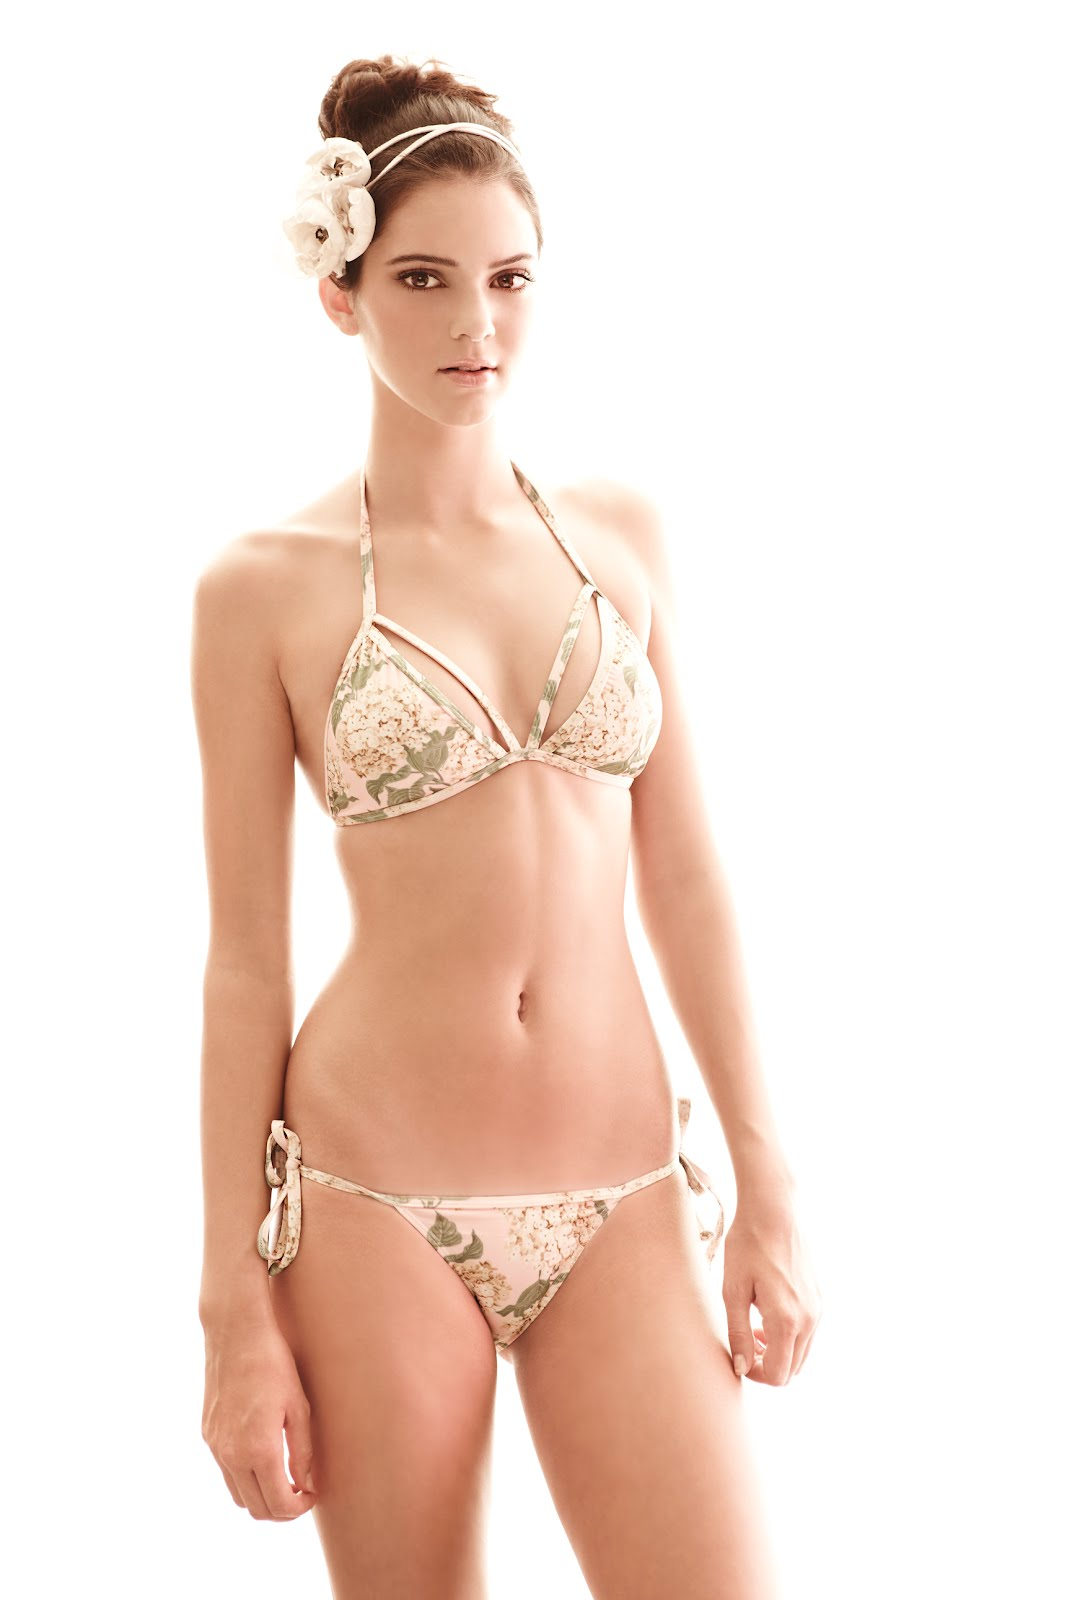 global buzz times kylie jenner 2012 bra size and